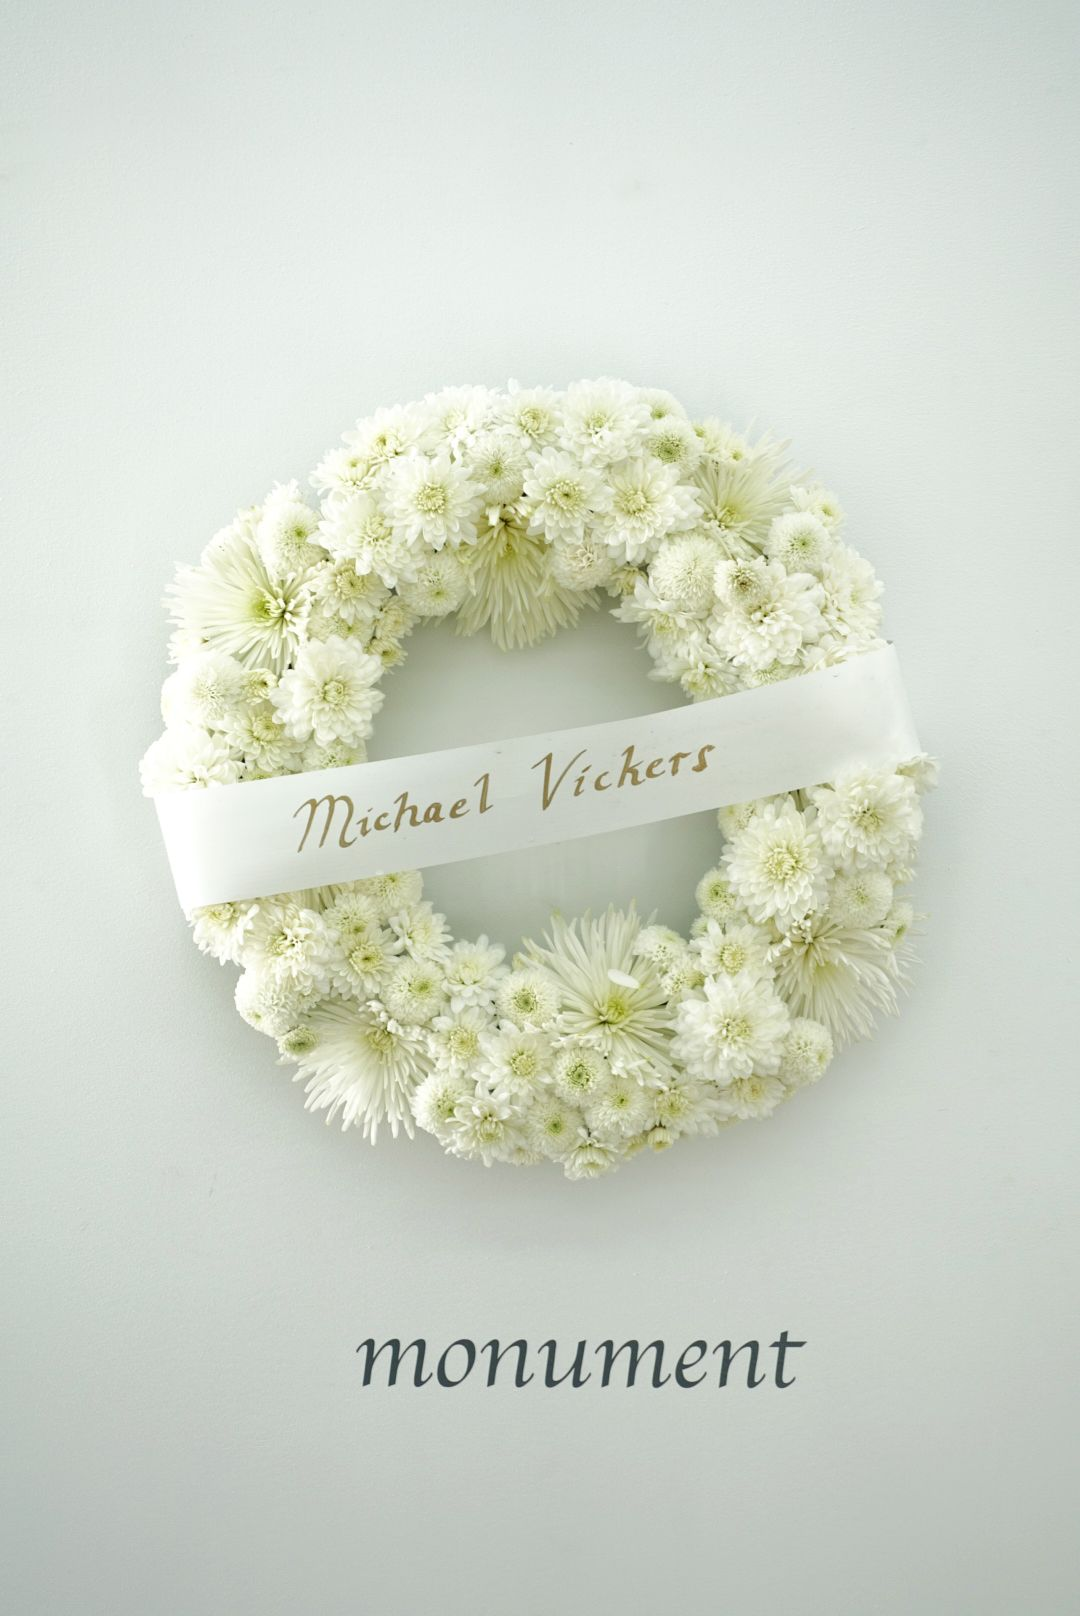 MICHAEL VICKERS | WREATH| FLORAL WREATH AND BANNER | 24 X 24 X 5 INCHES| 2017